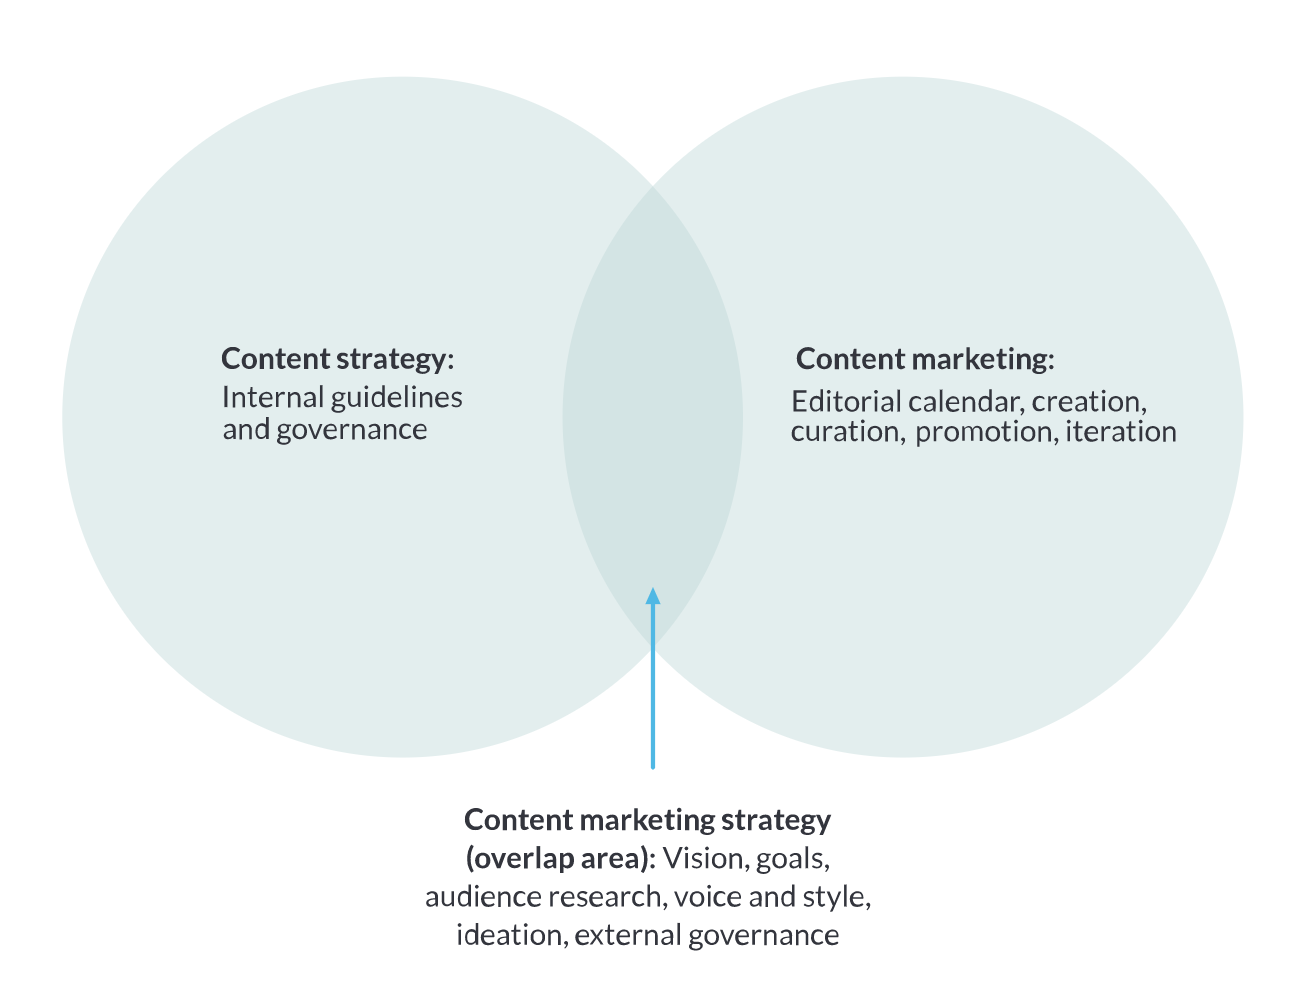 moz content marketing strategy